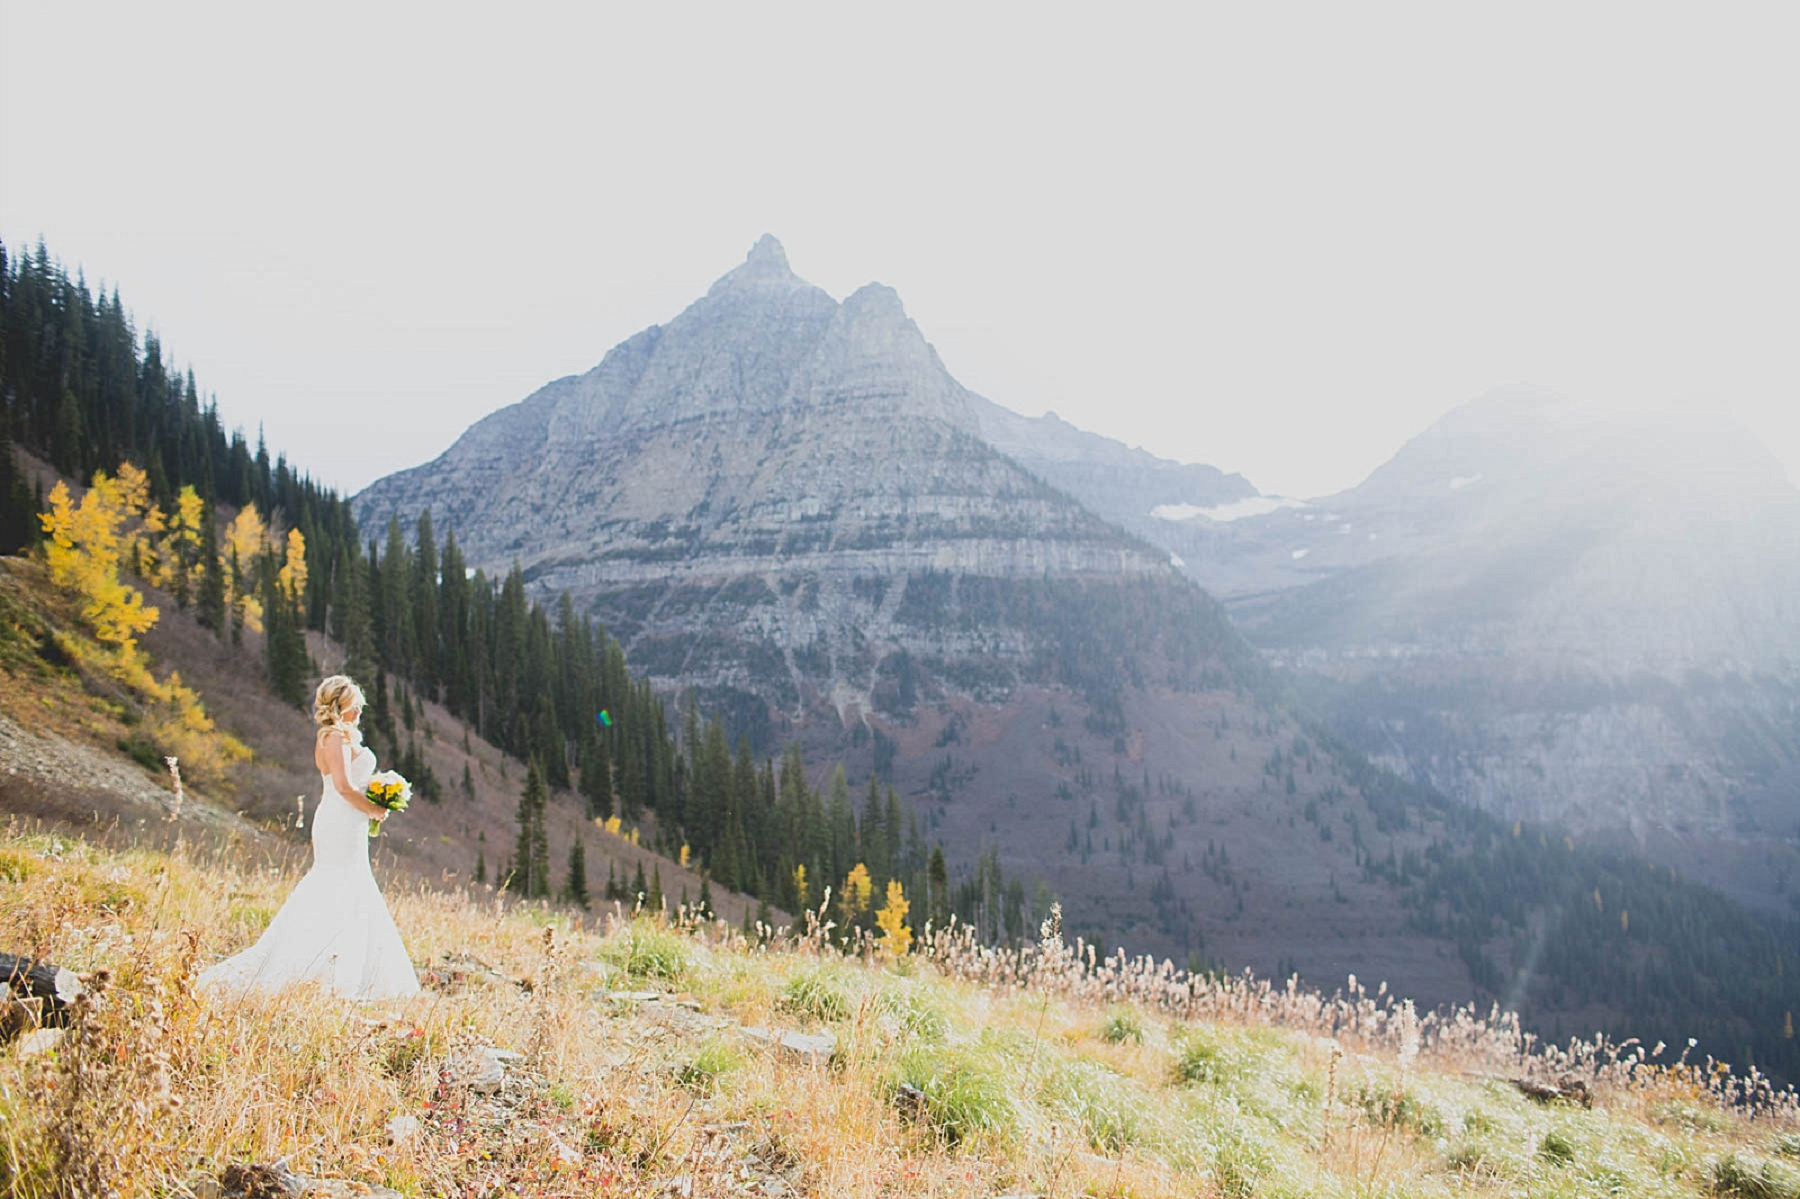 Jennifer_Mooney_photo_day_after_session_glacier_park_elegant_wedding_bride_groom_destination_-36.jpg